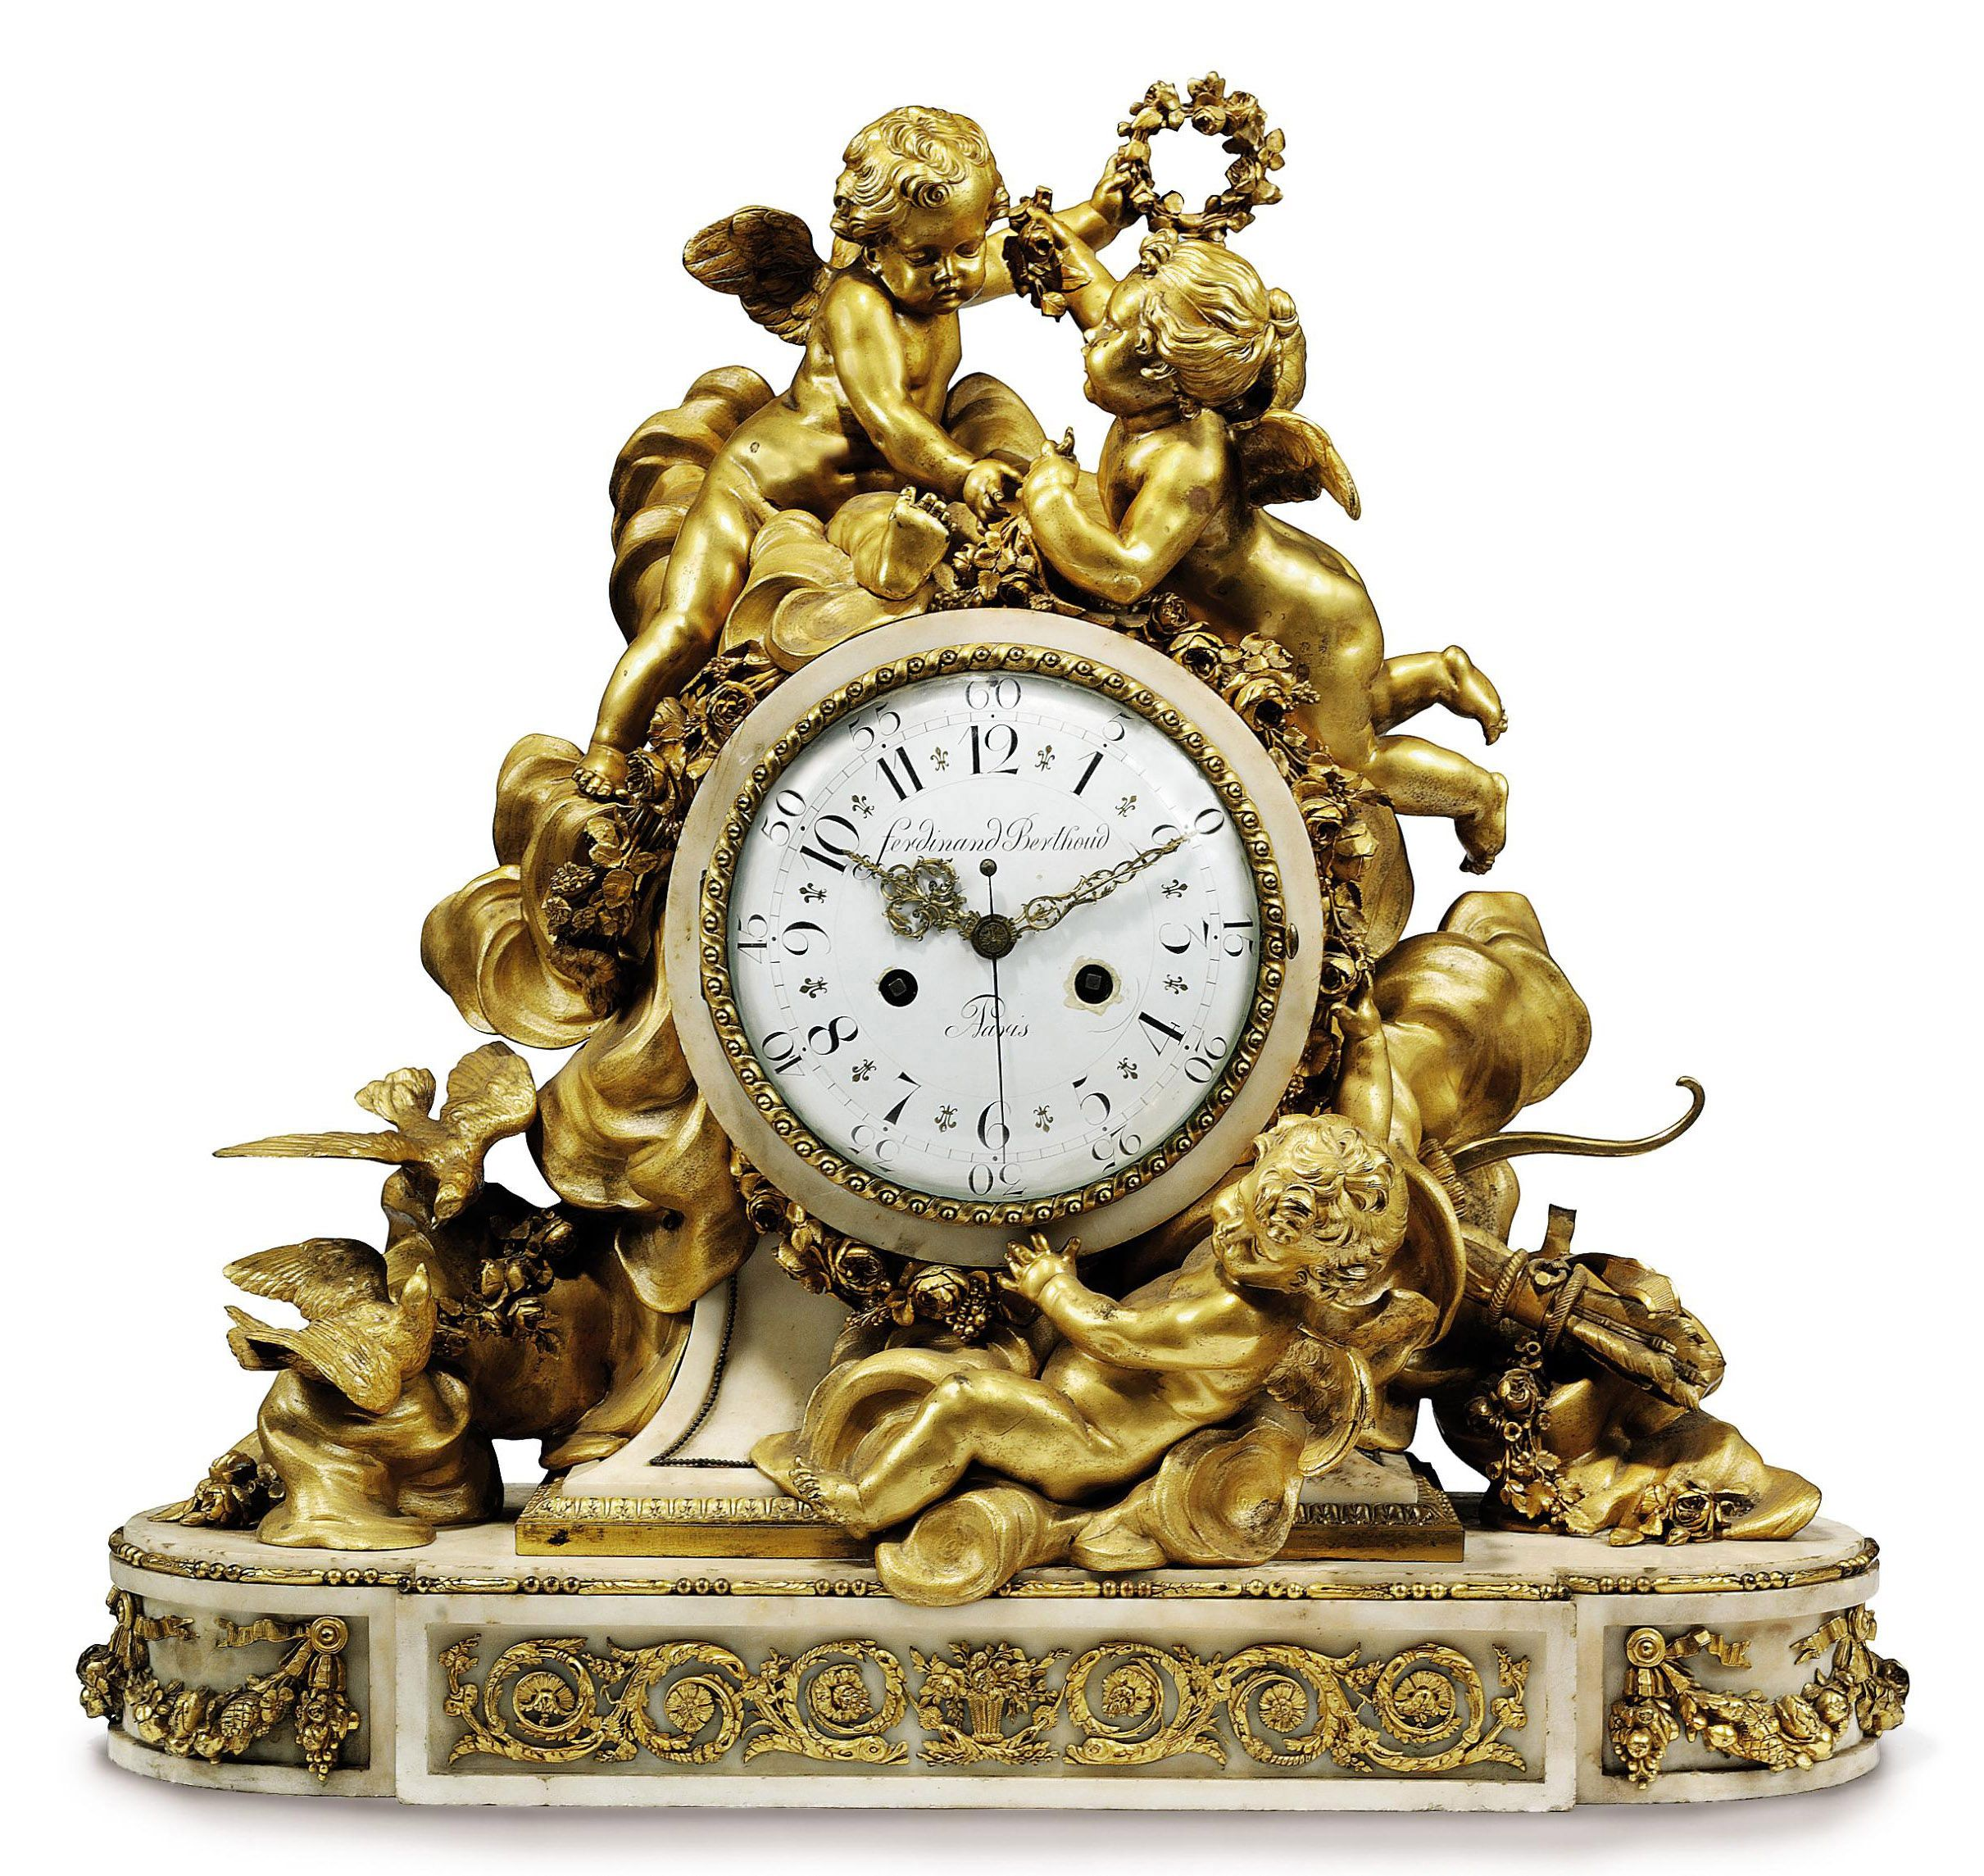 C1860 A French Large White Marble And Ormolu Striking Mantel Clock The Case By Jean Beurdeley Paris Th Antique Pendulum Wall Clock Clock Antique Wall Clocks